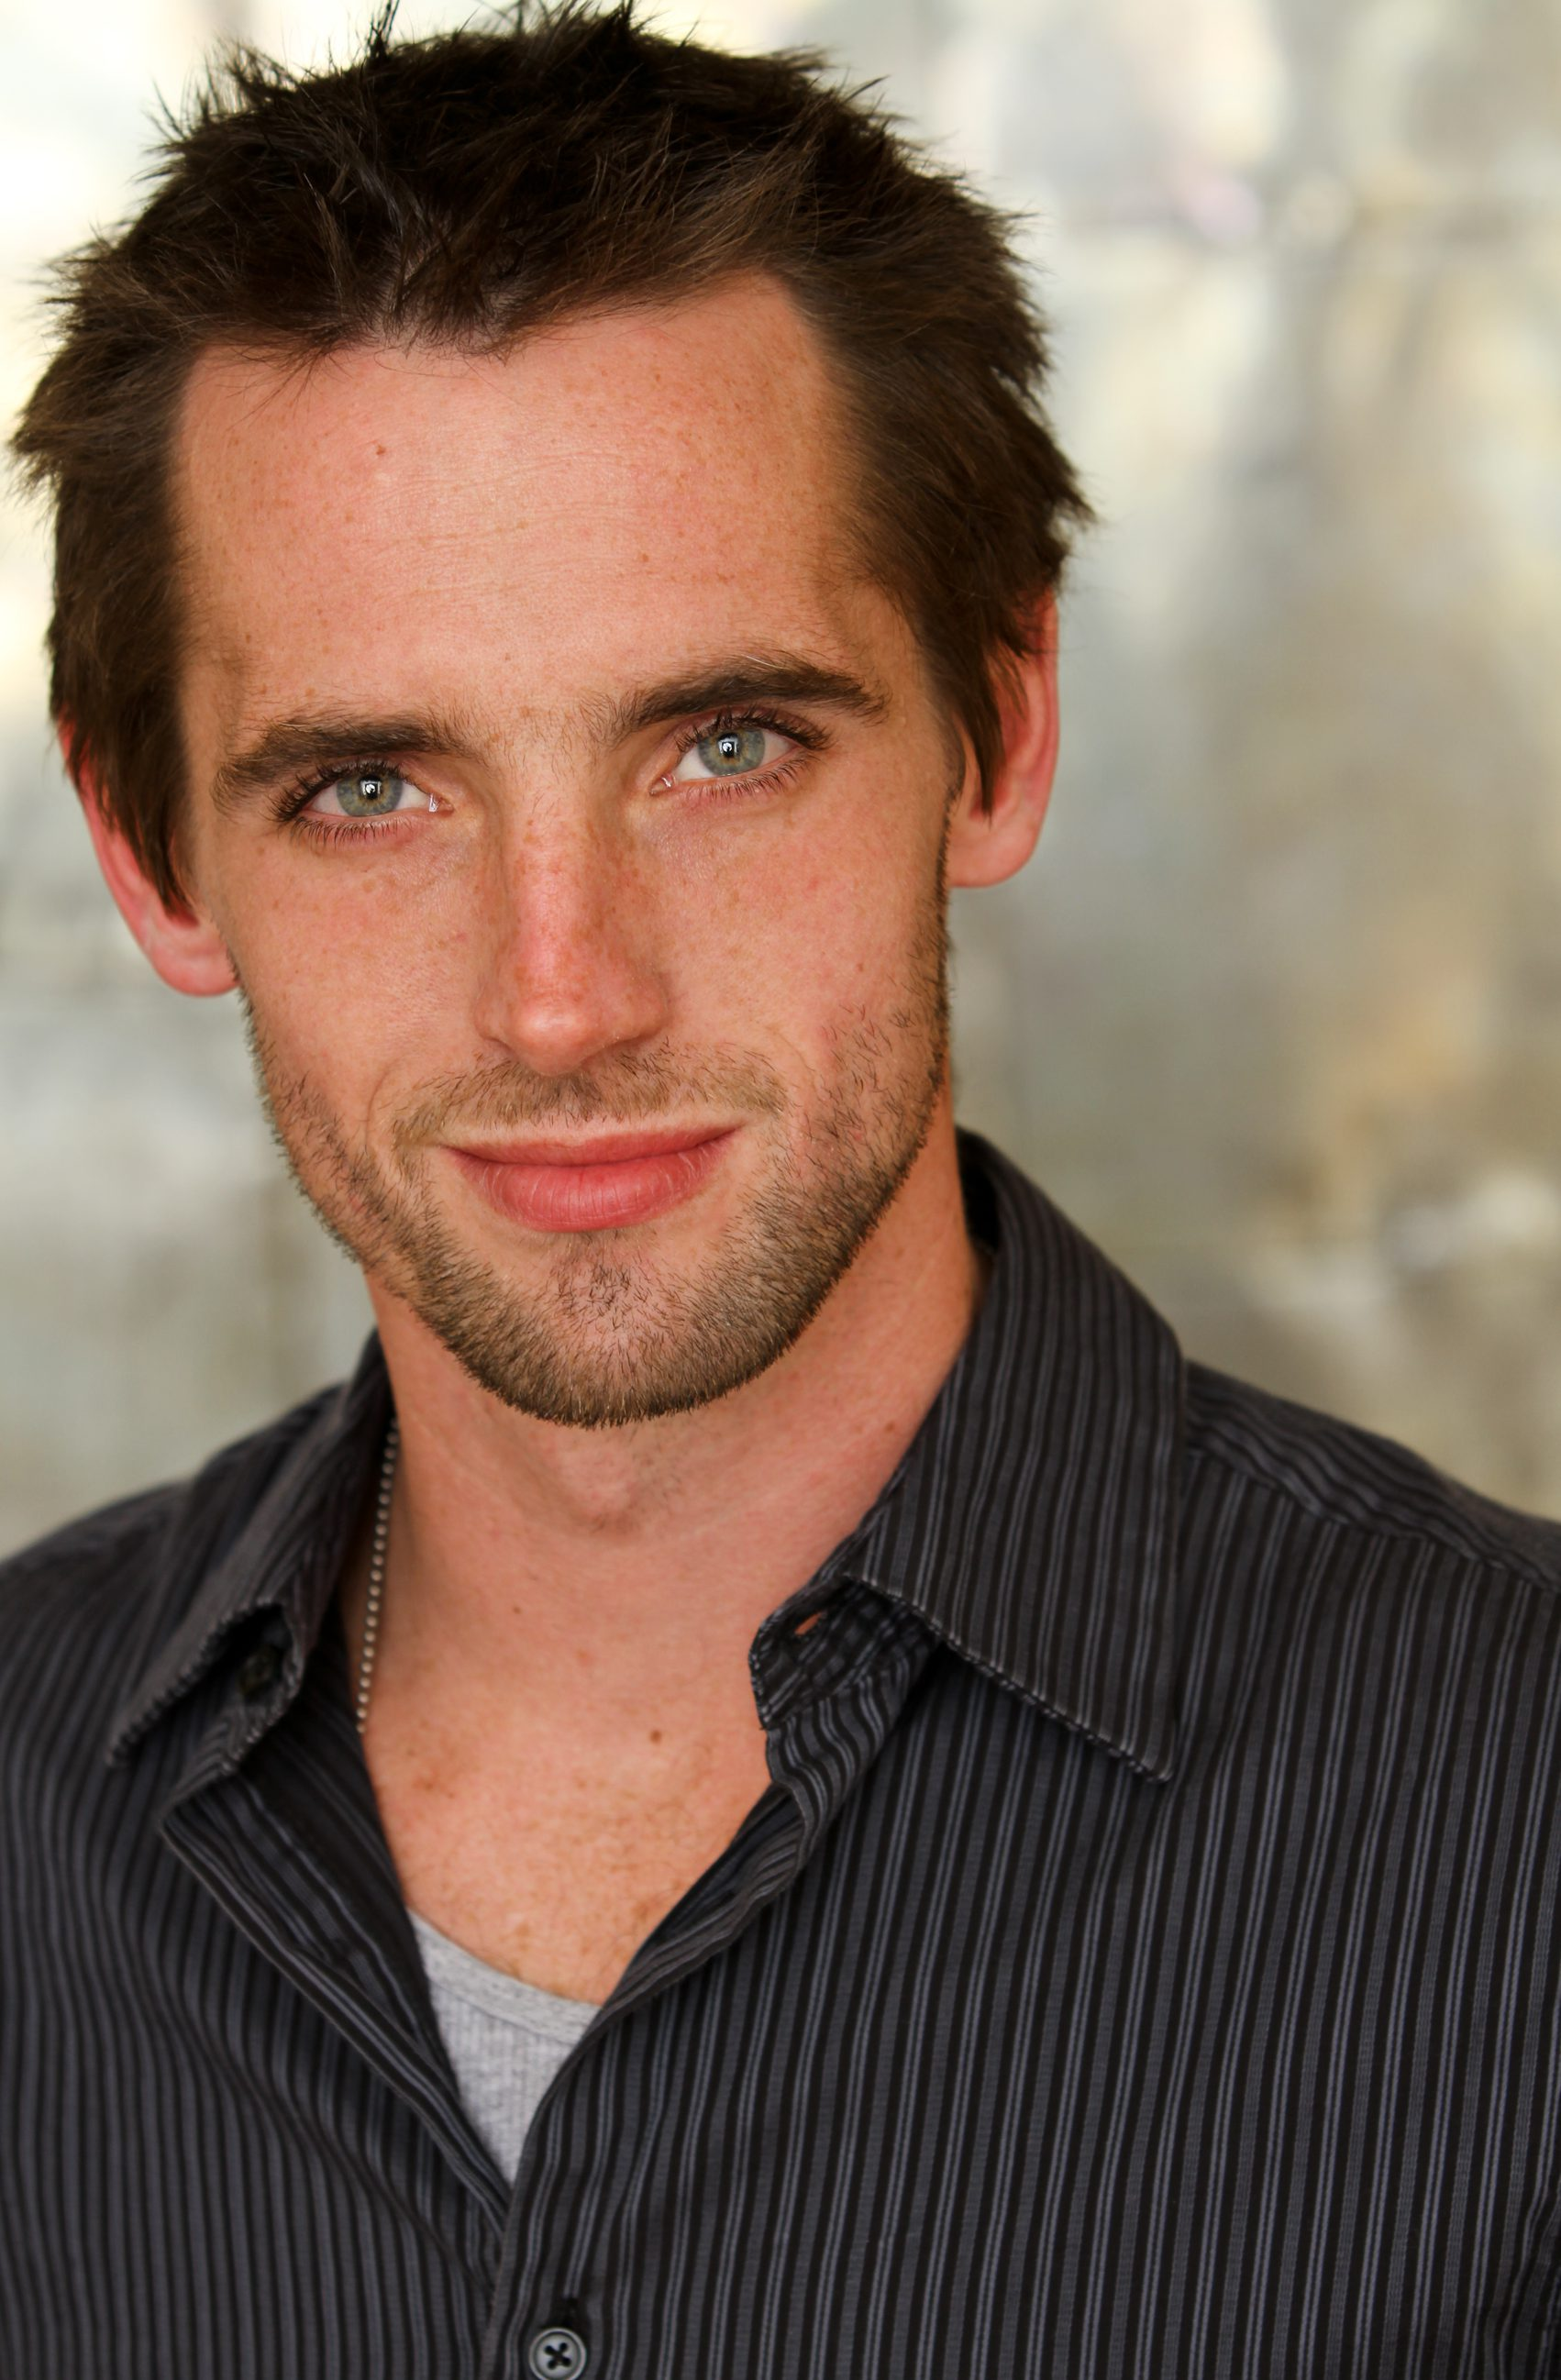 Ryan Higgins Romeo + Juliet Headshot